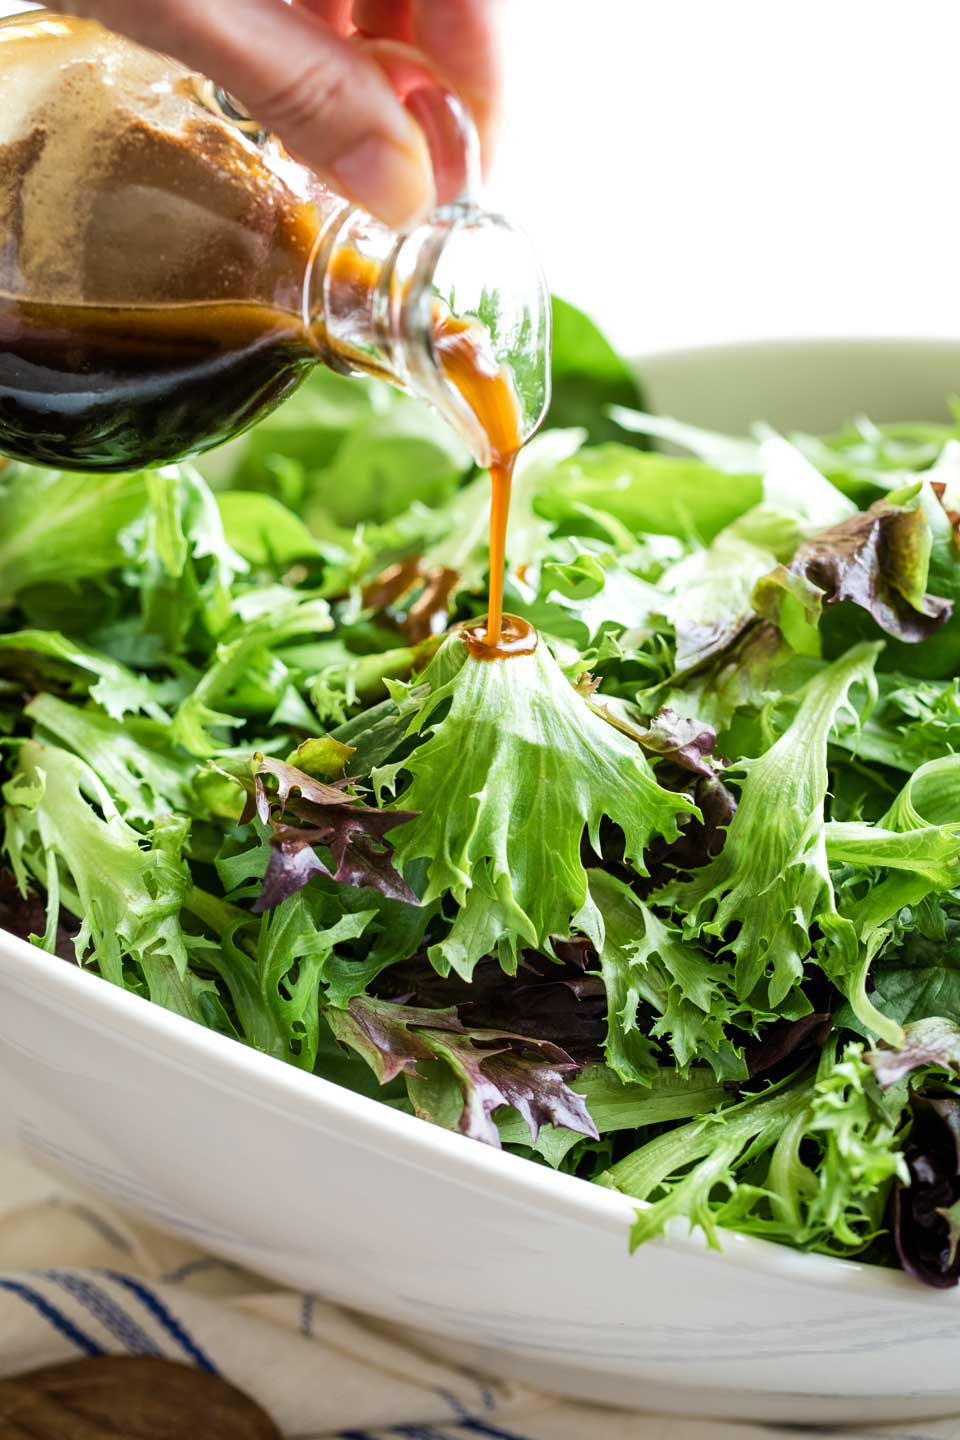 closeup of a bowl of fancy baby greens with a cruet of dressing just beginning to be poured over top